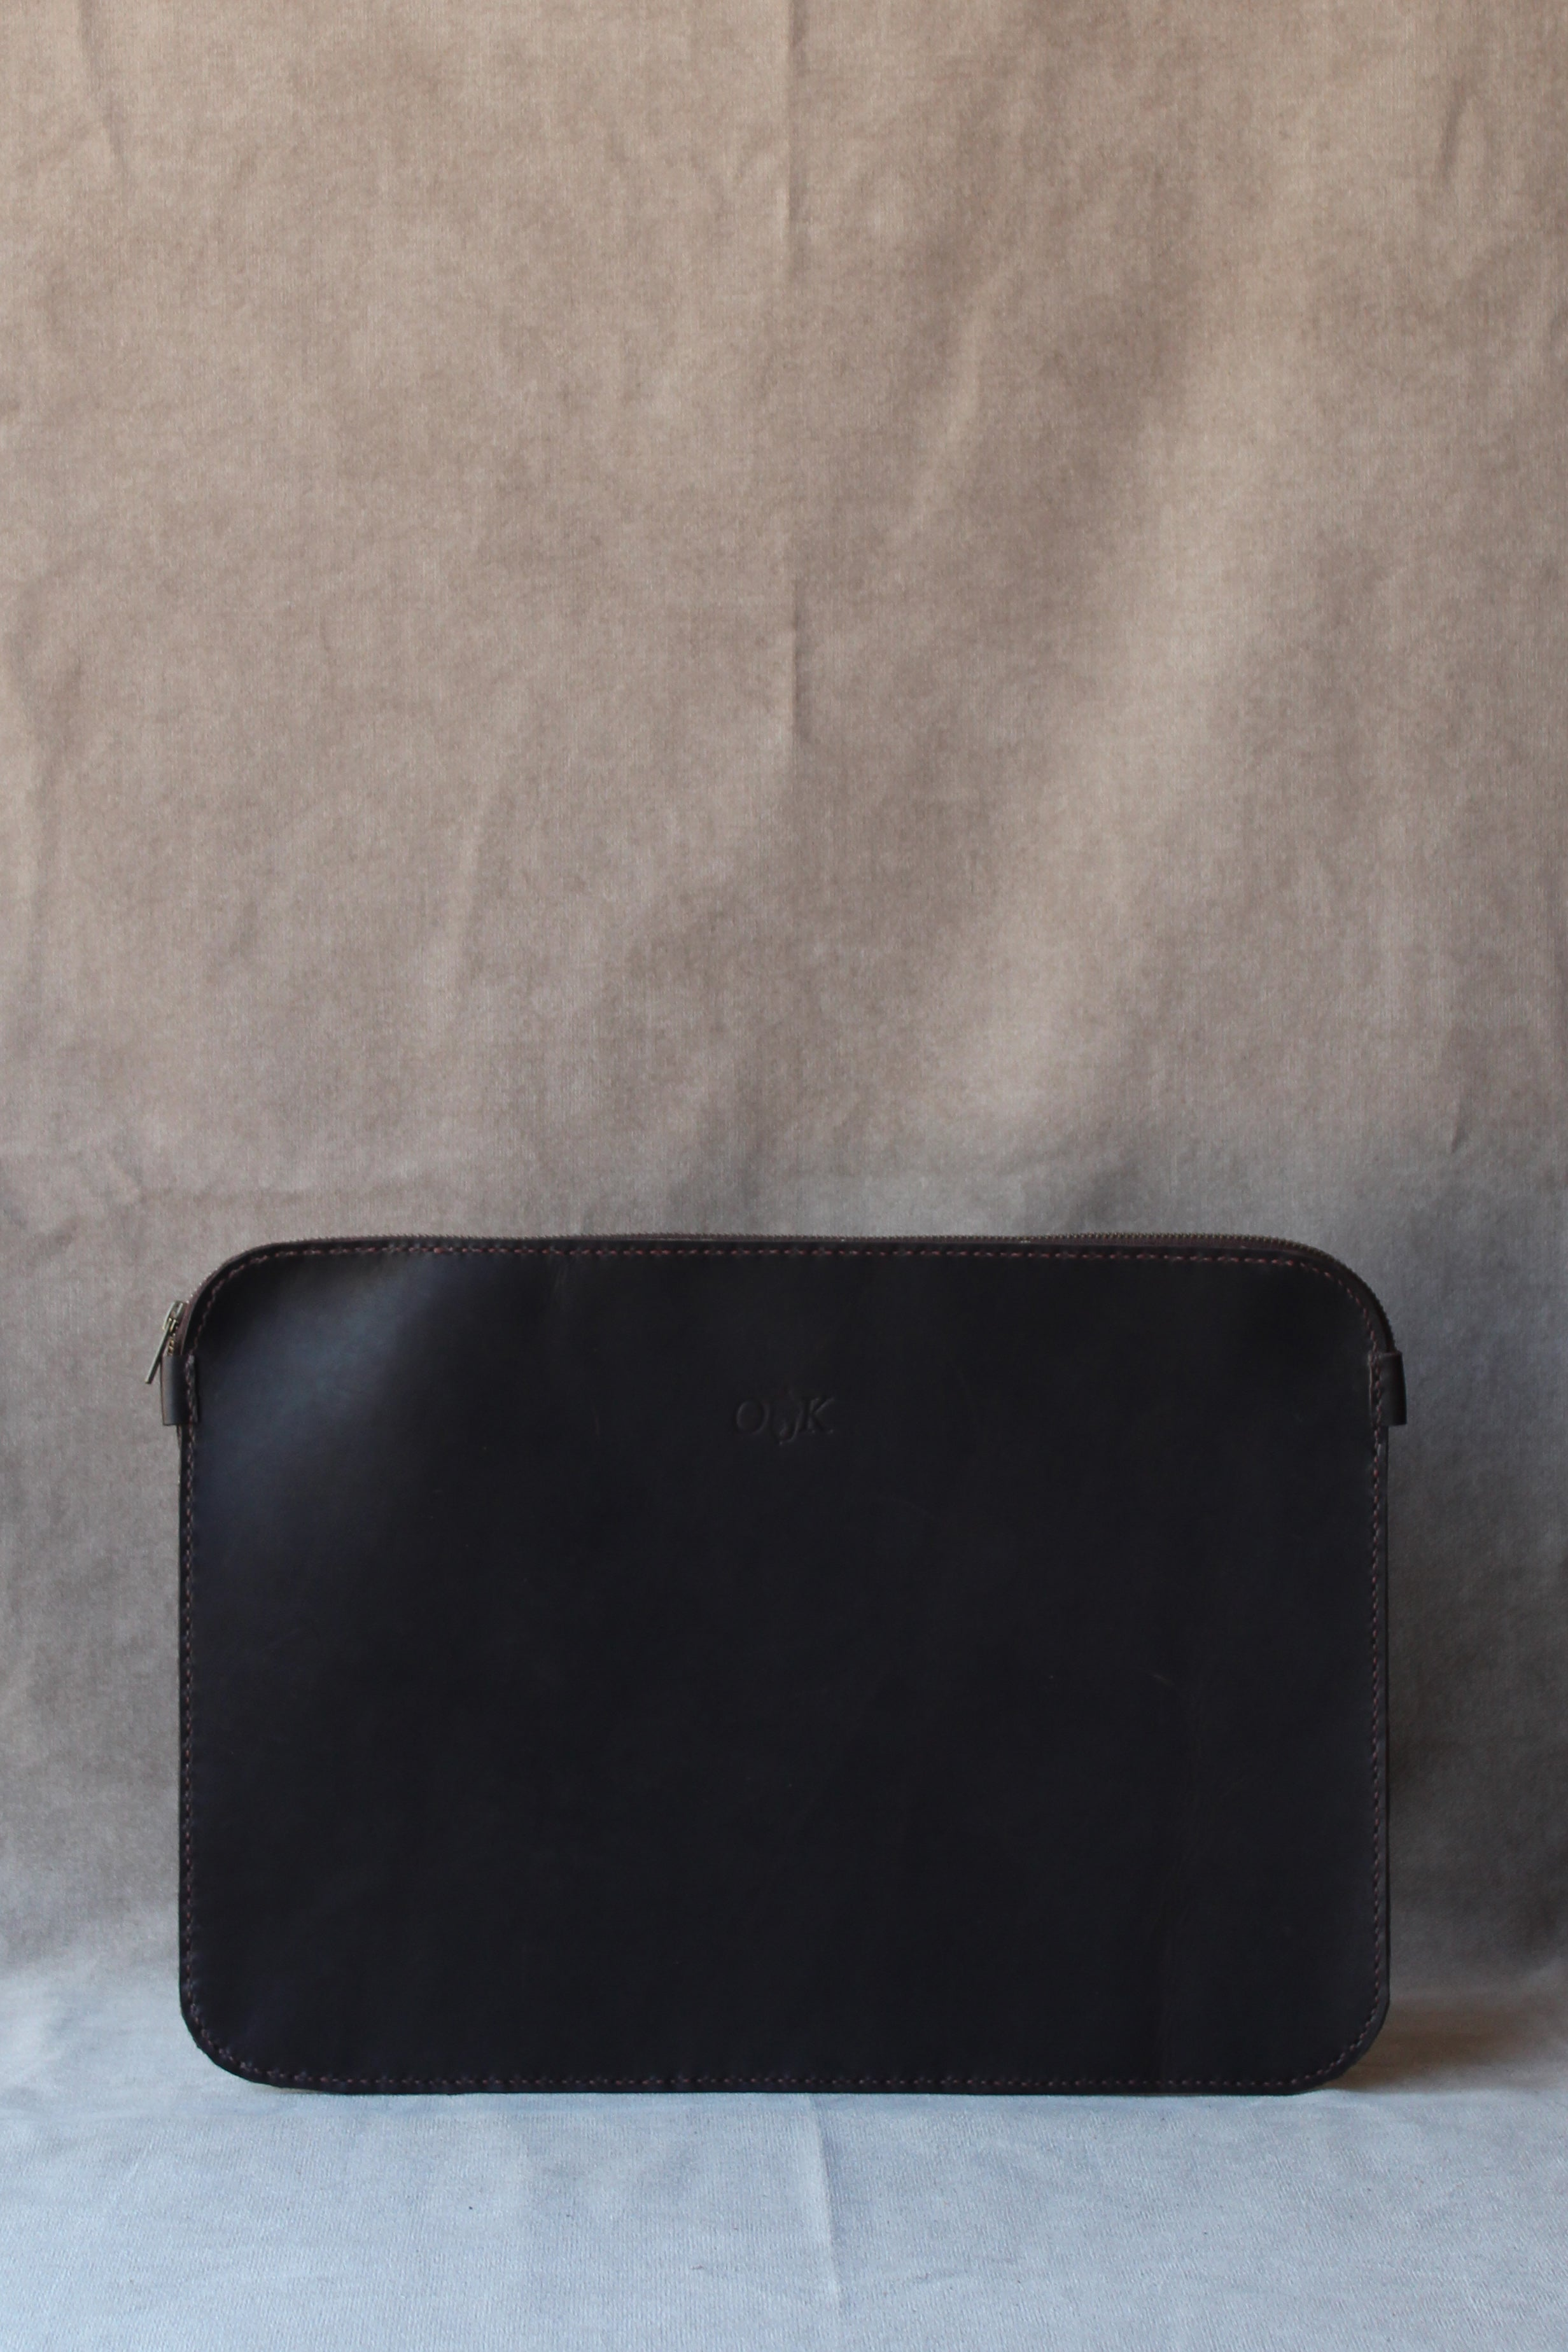 photo of the leather laptop sleeve